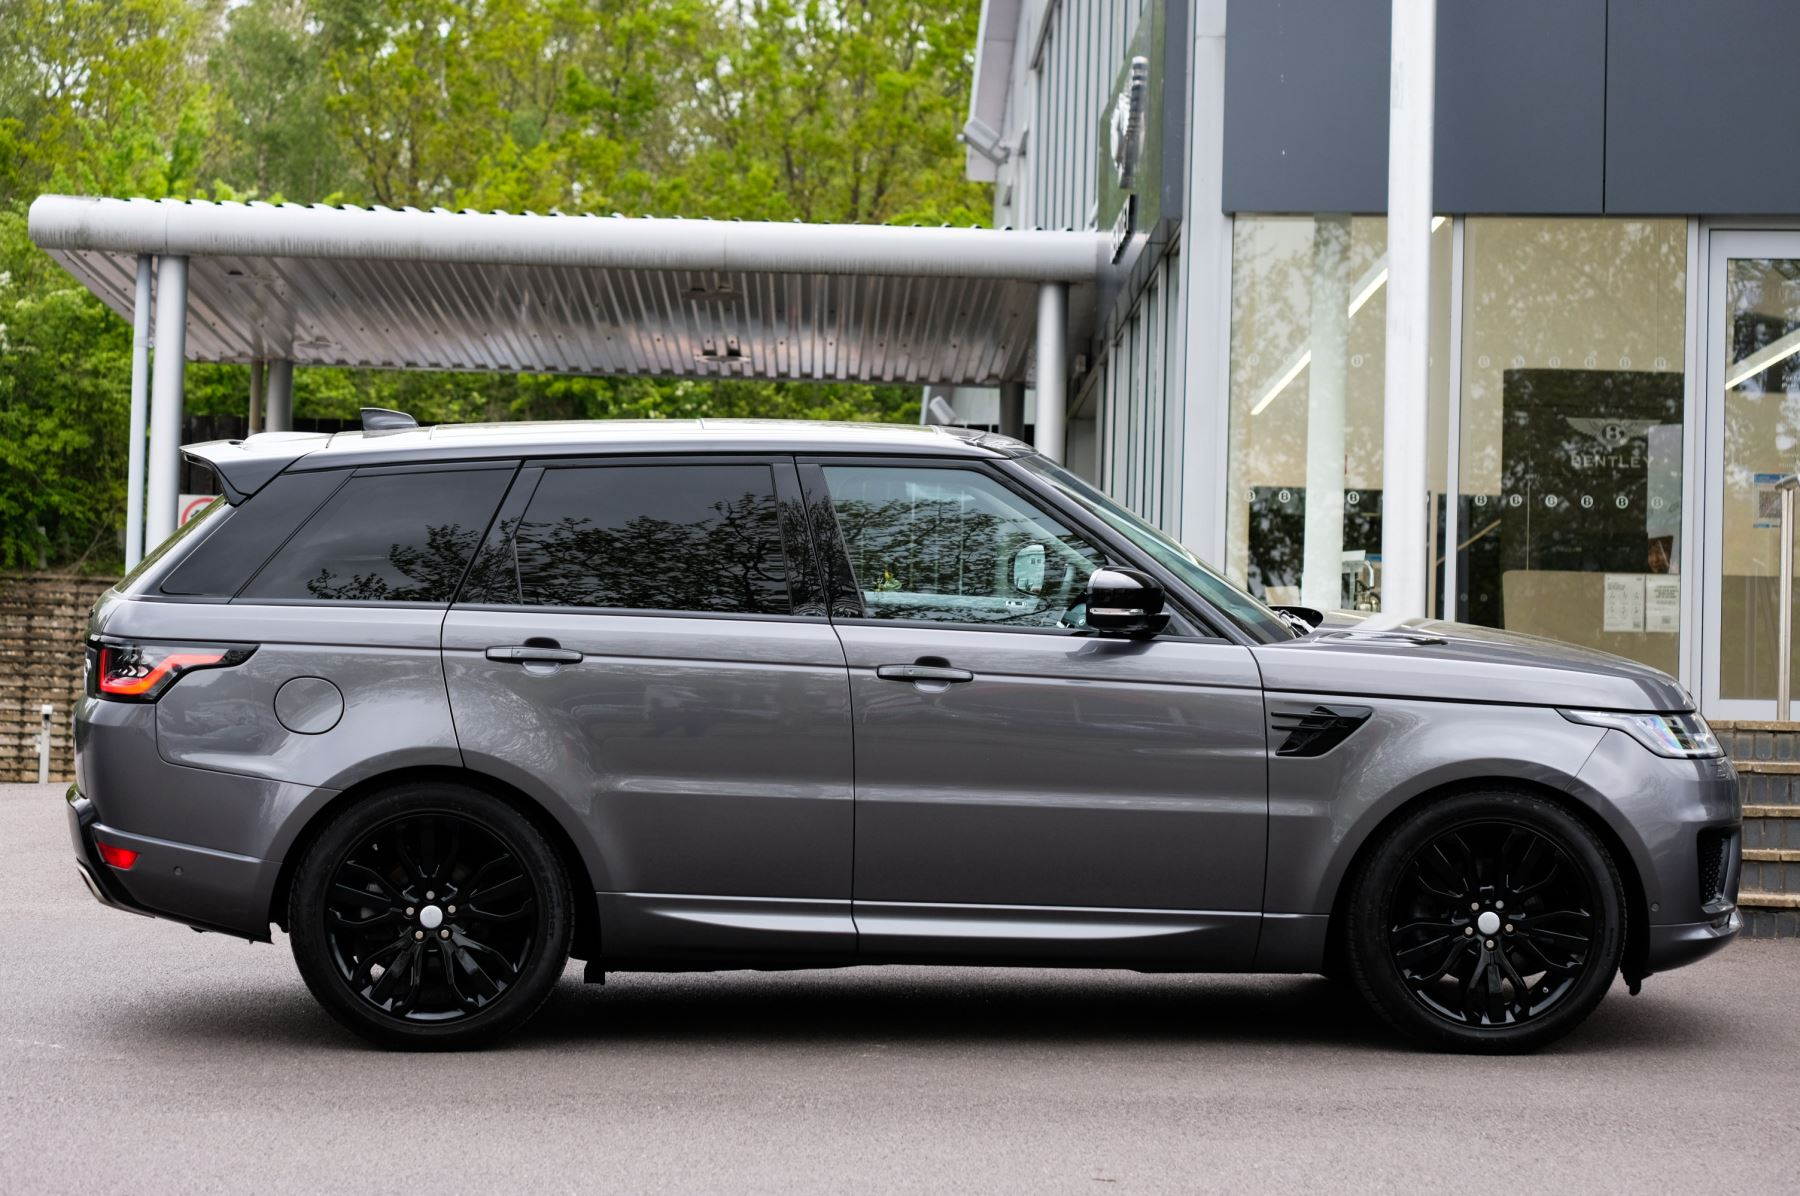 Land Rover Range Rover Sport 3.0 SDV6 Autobiography Dynamic 5dr [7 Seat] - Rear Seat Entertainment - 21 Inch Alloys image 3